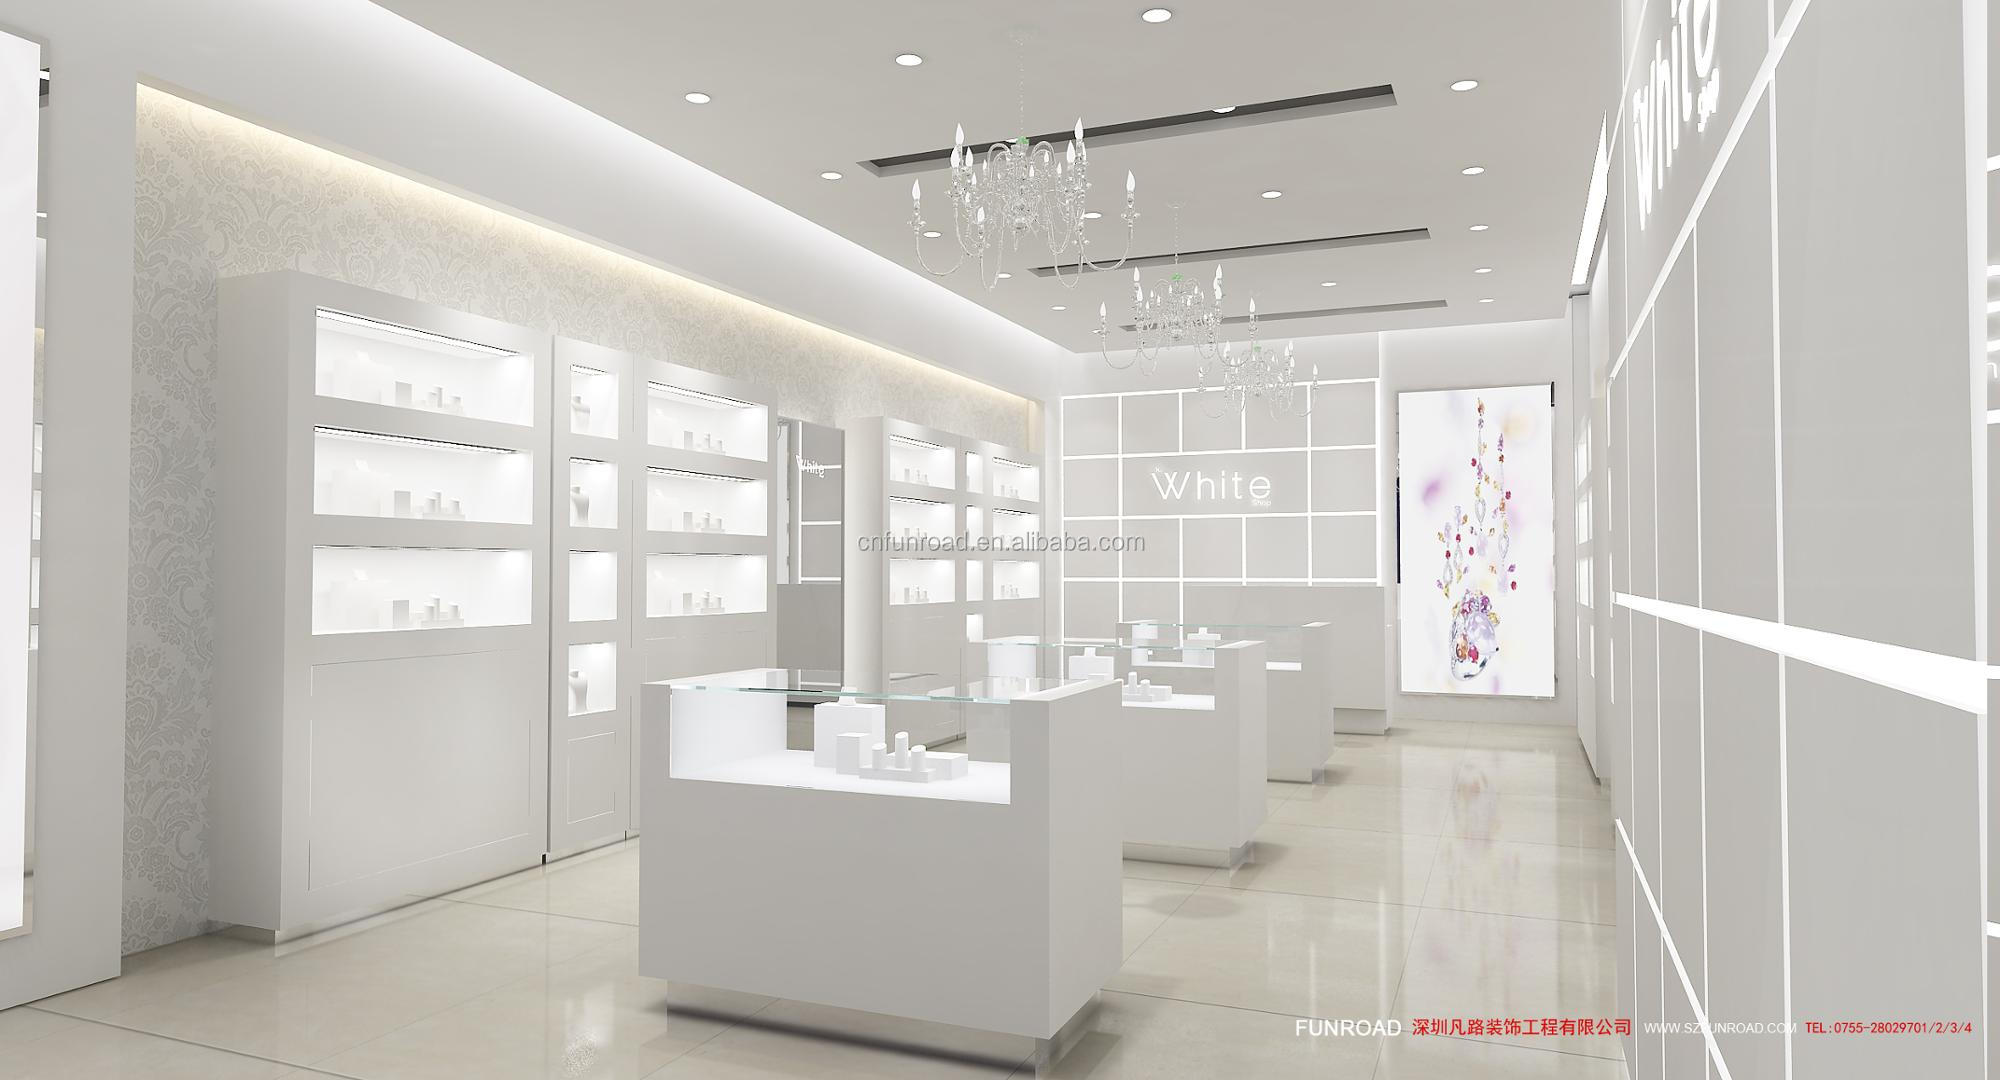 Luxury 3D design wooden jewelry display showcase / jewelry shop interior design with jewelry display stand